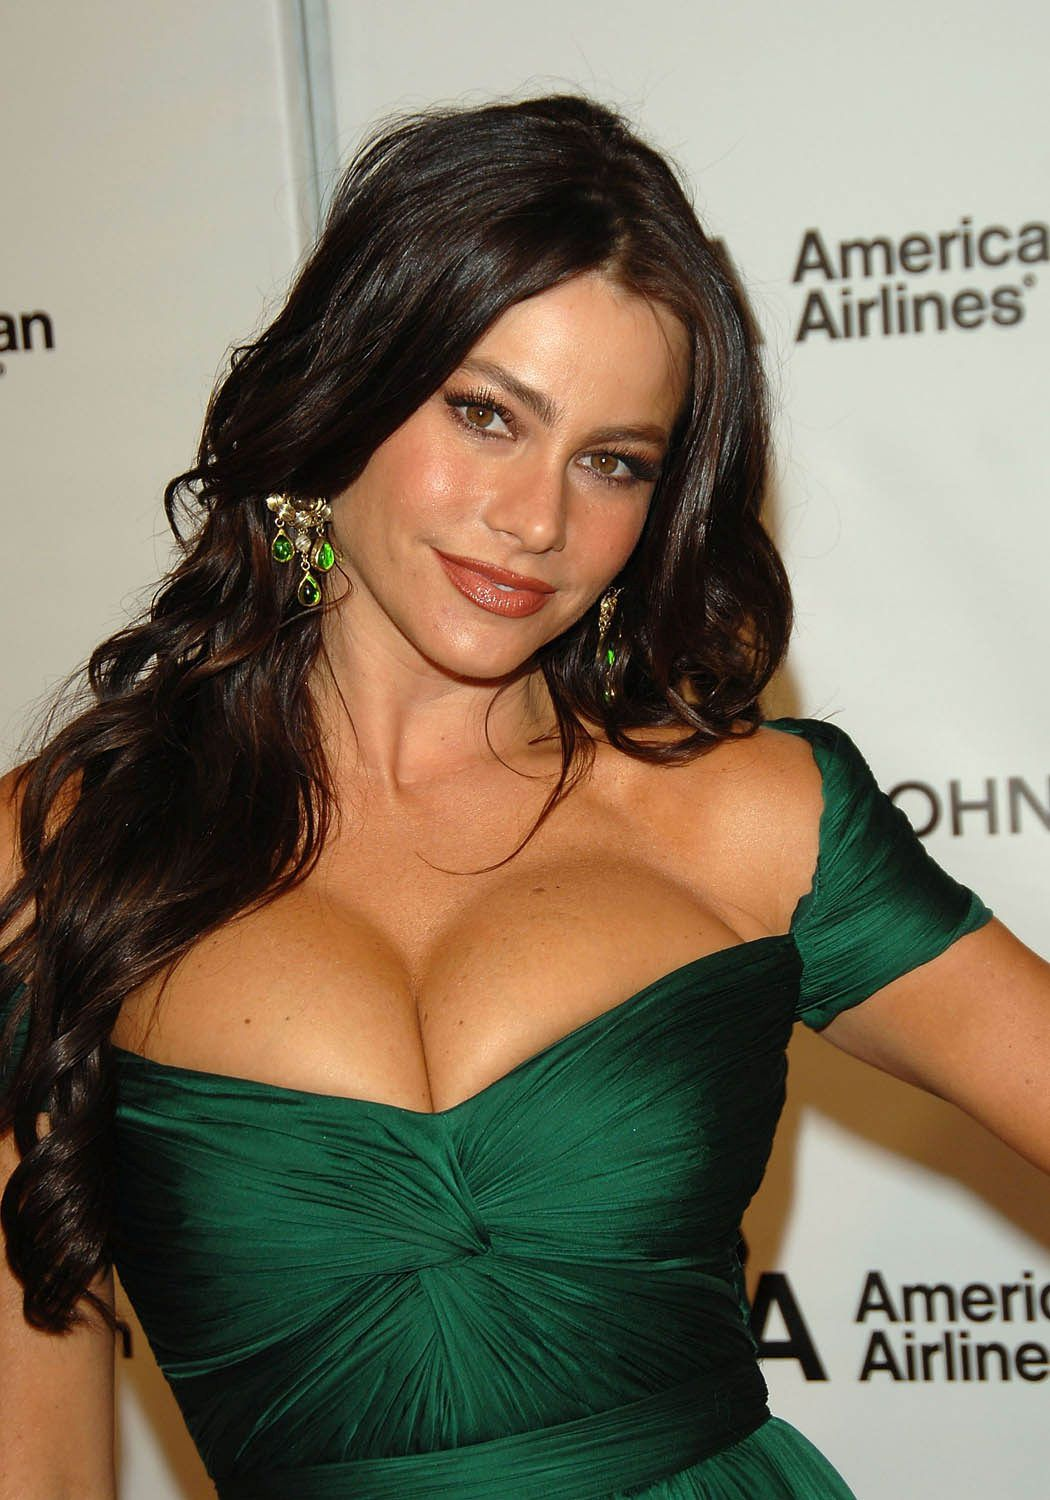 Cleavage Hot Sofia Vergara naked photo 2017